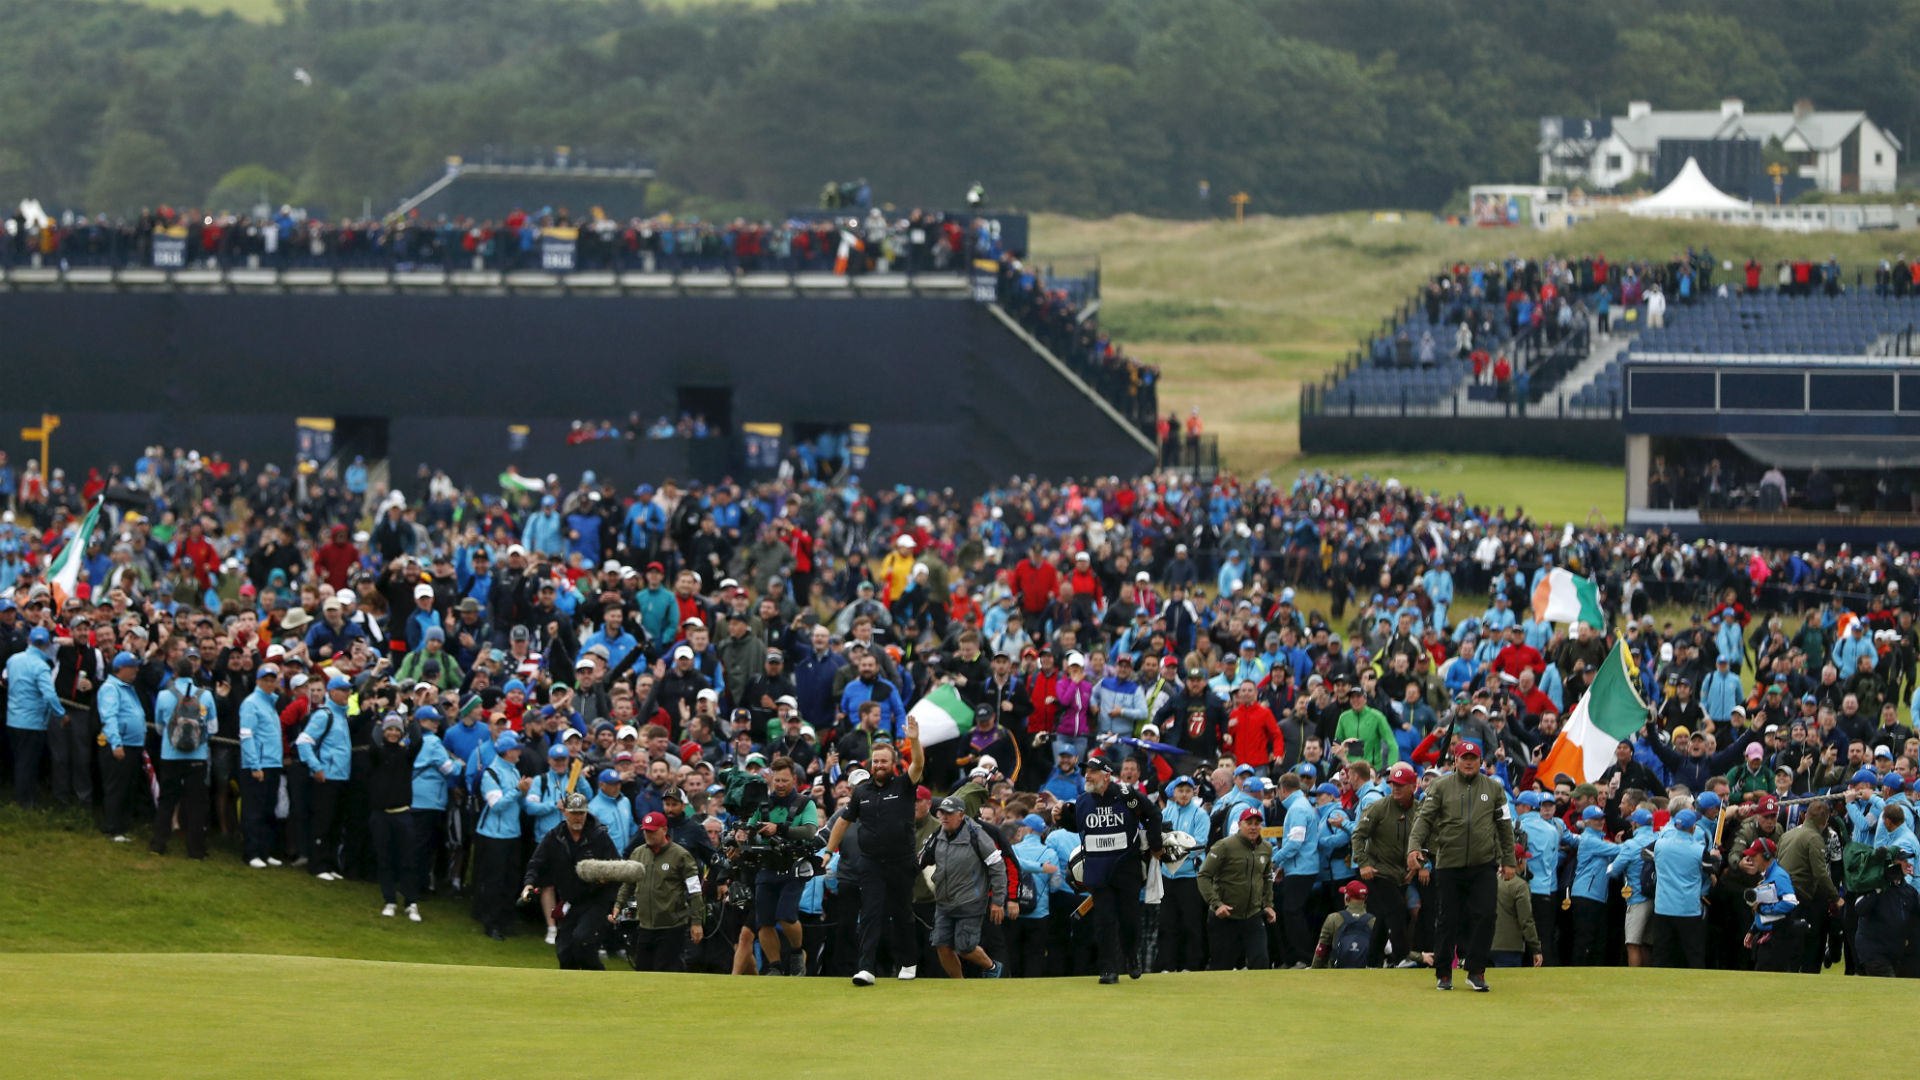 Woods' woes, McIlroy's meltdown, fantastic fans and lovable Lowry - The Open Championship reporters' review